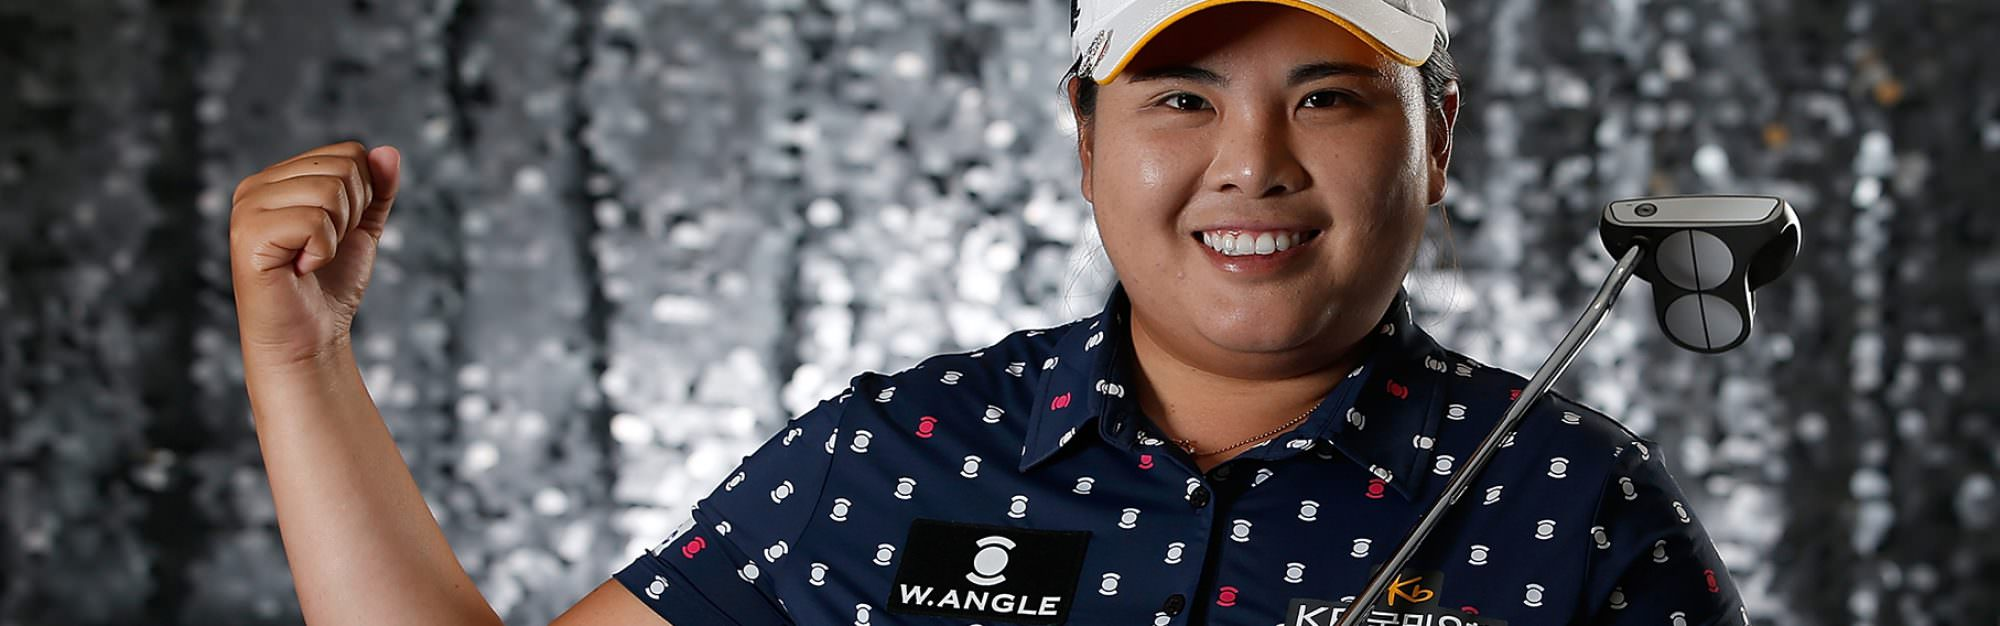 NCG's Player of the Decade: Inbee Park